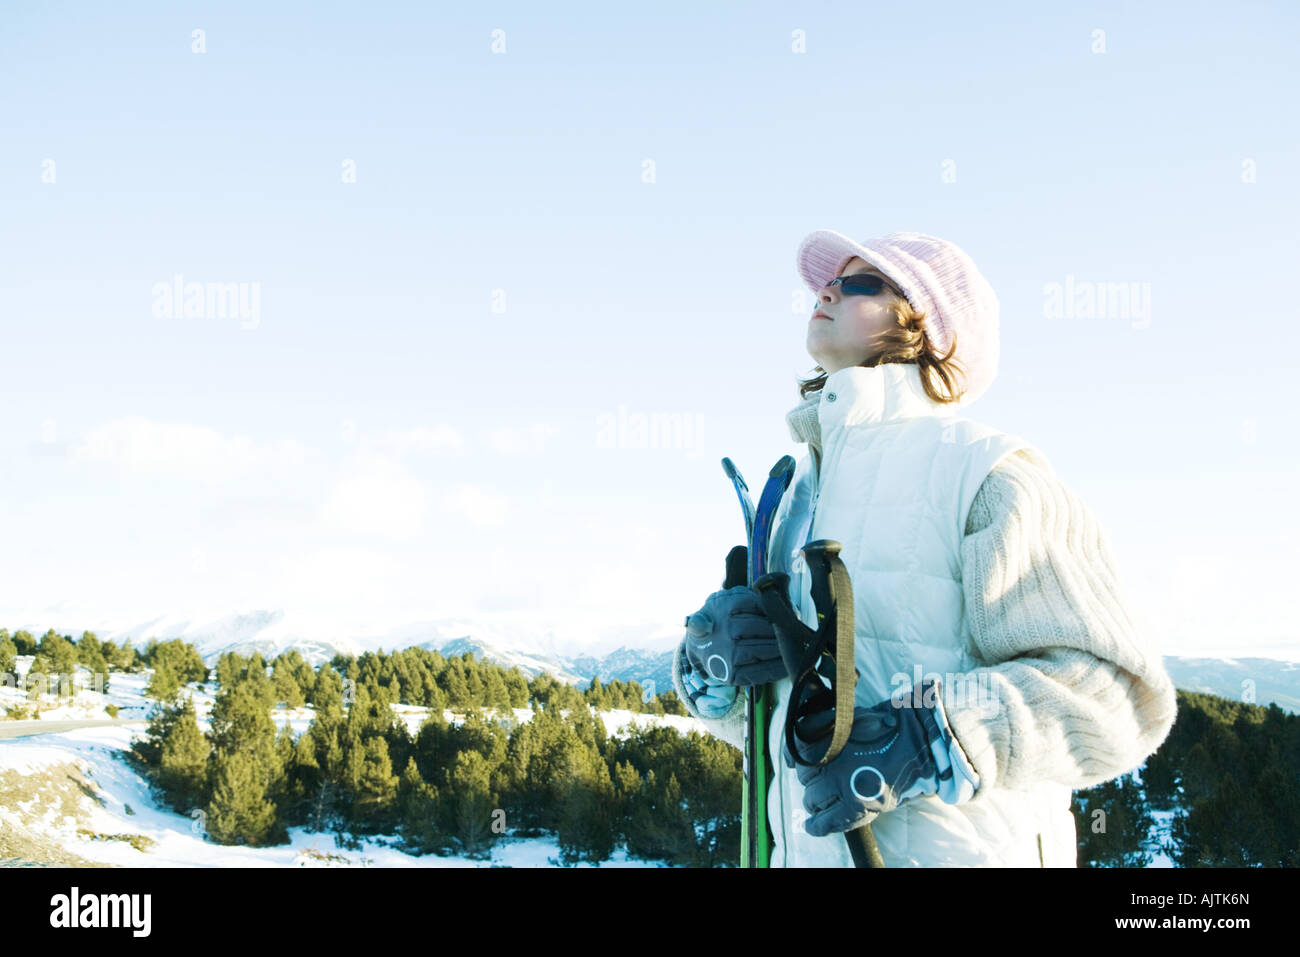 Young skier standing, looking up, side view - Stock Image